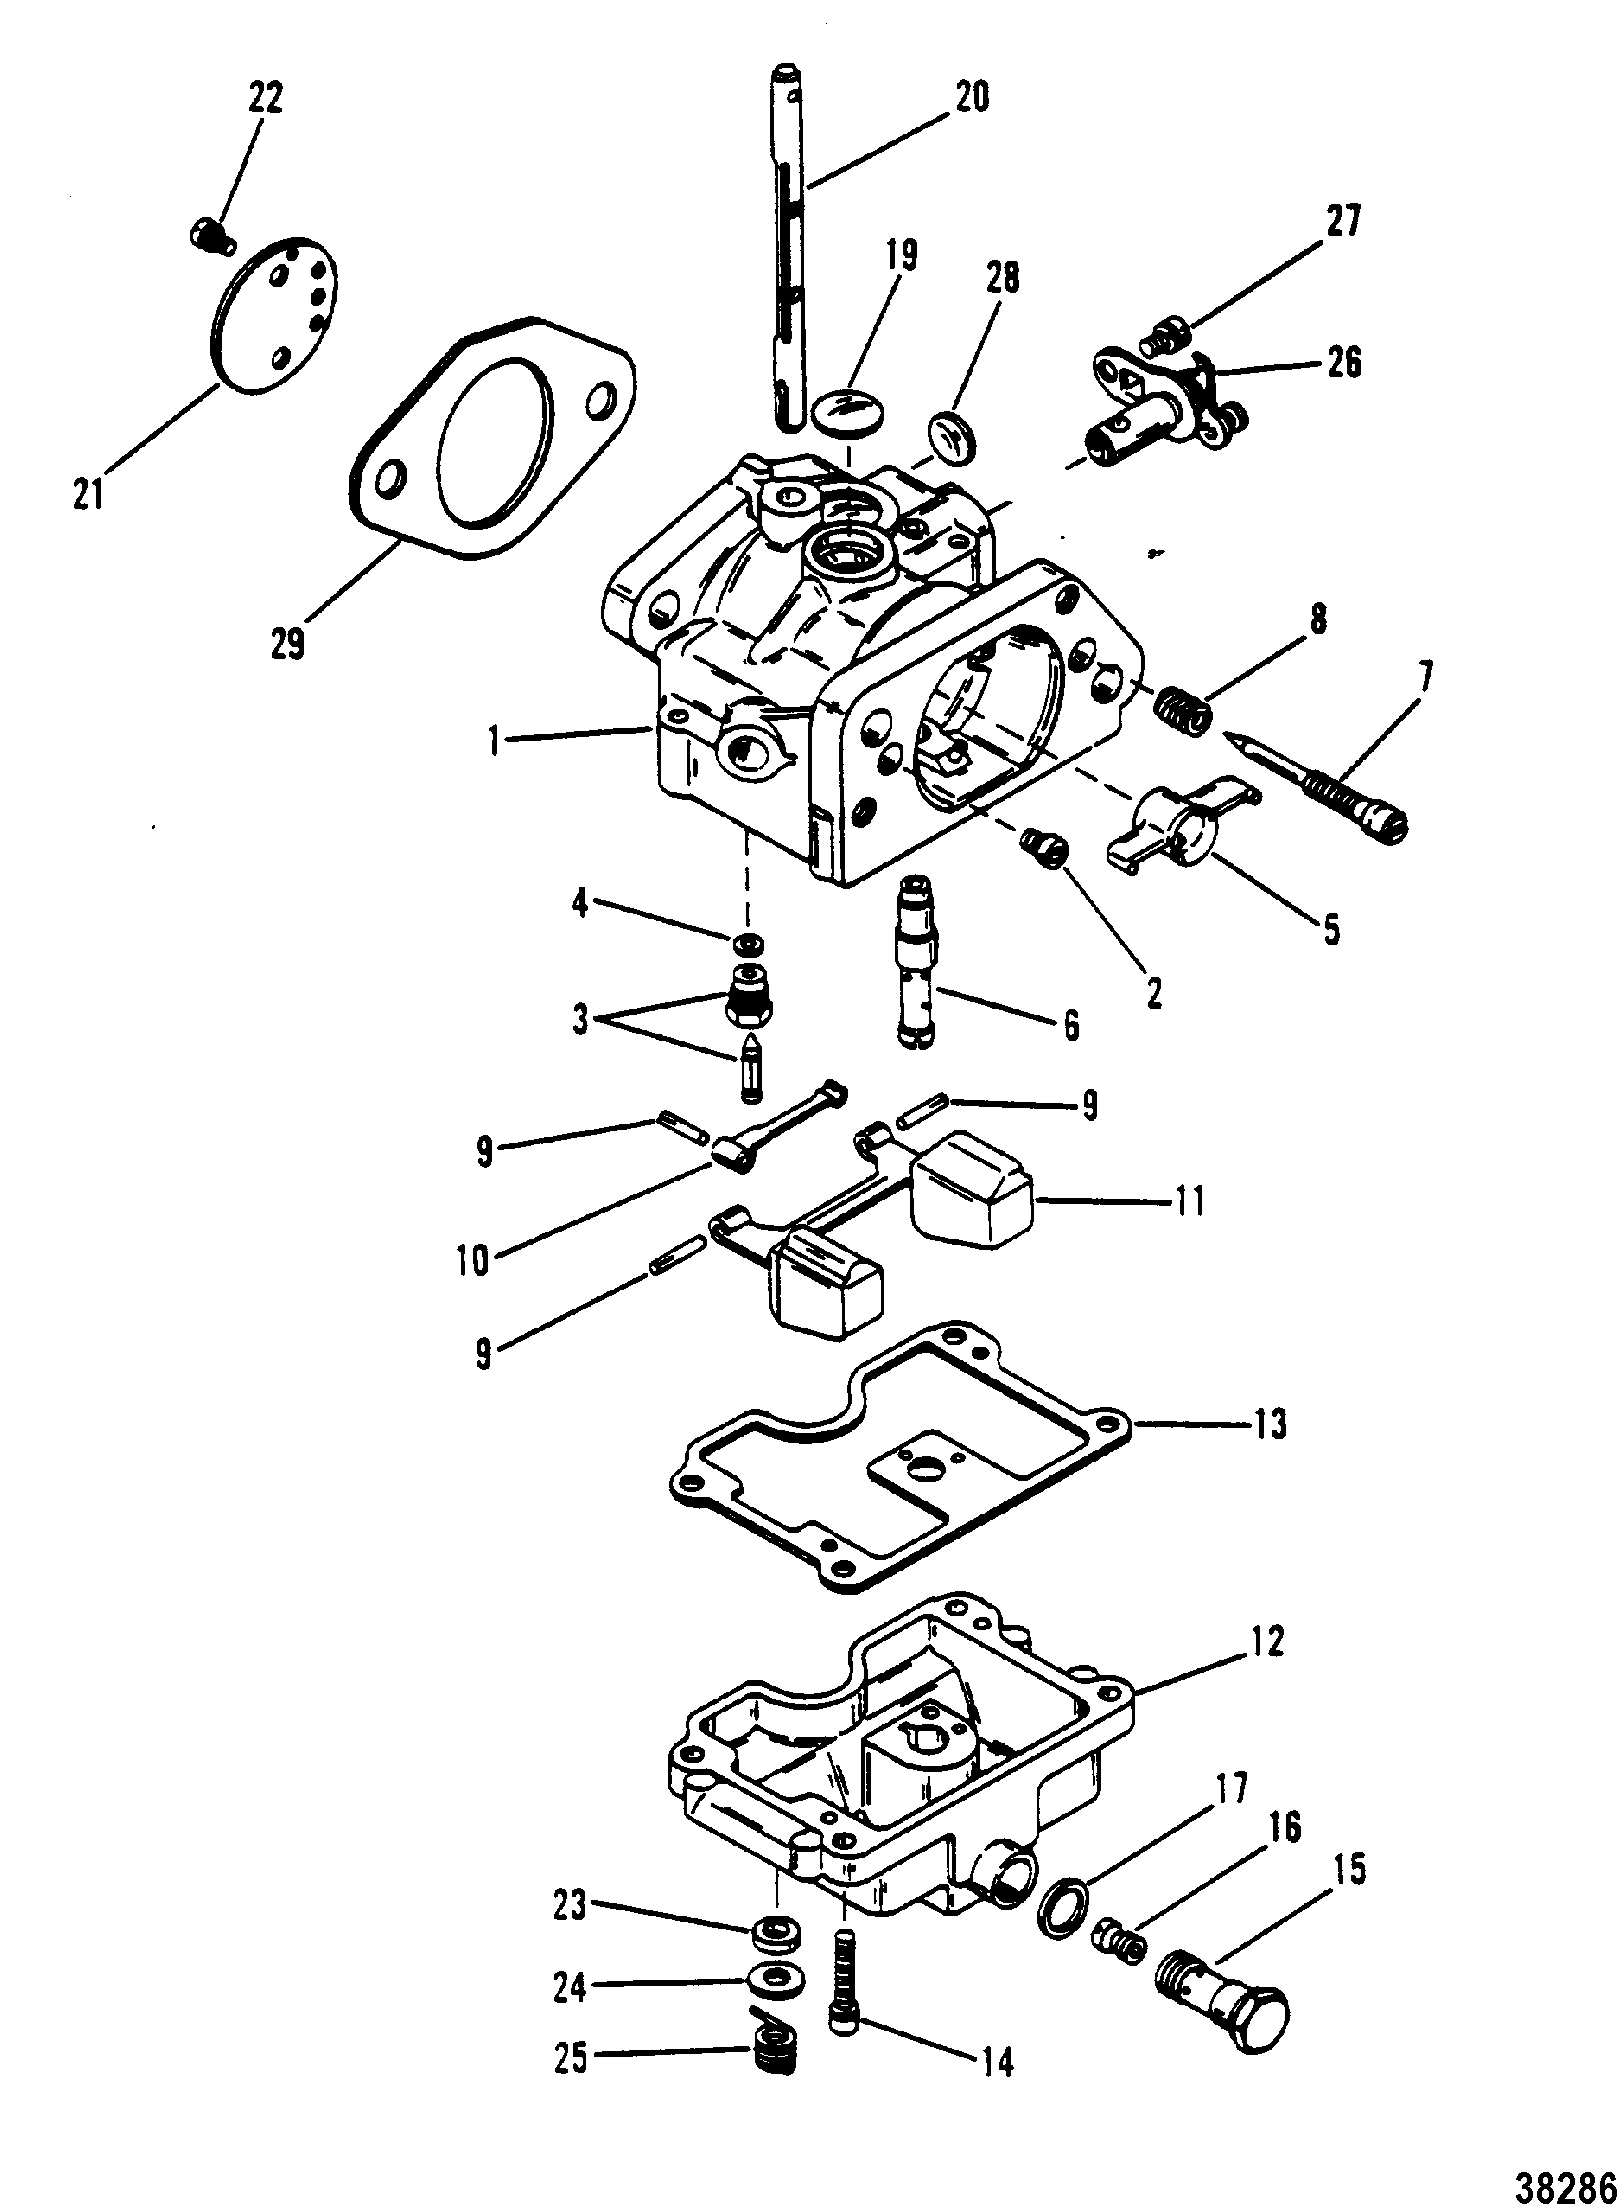 Show_product on Mercury Outboard Parts Diagram